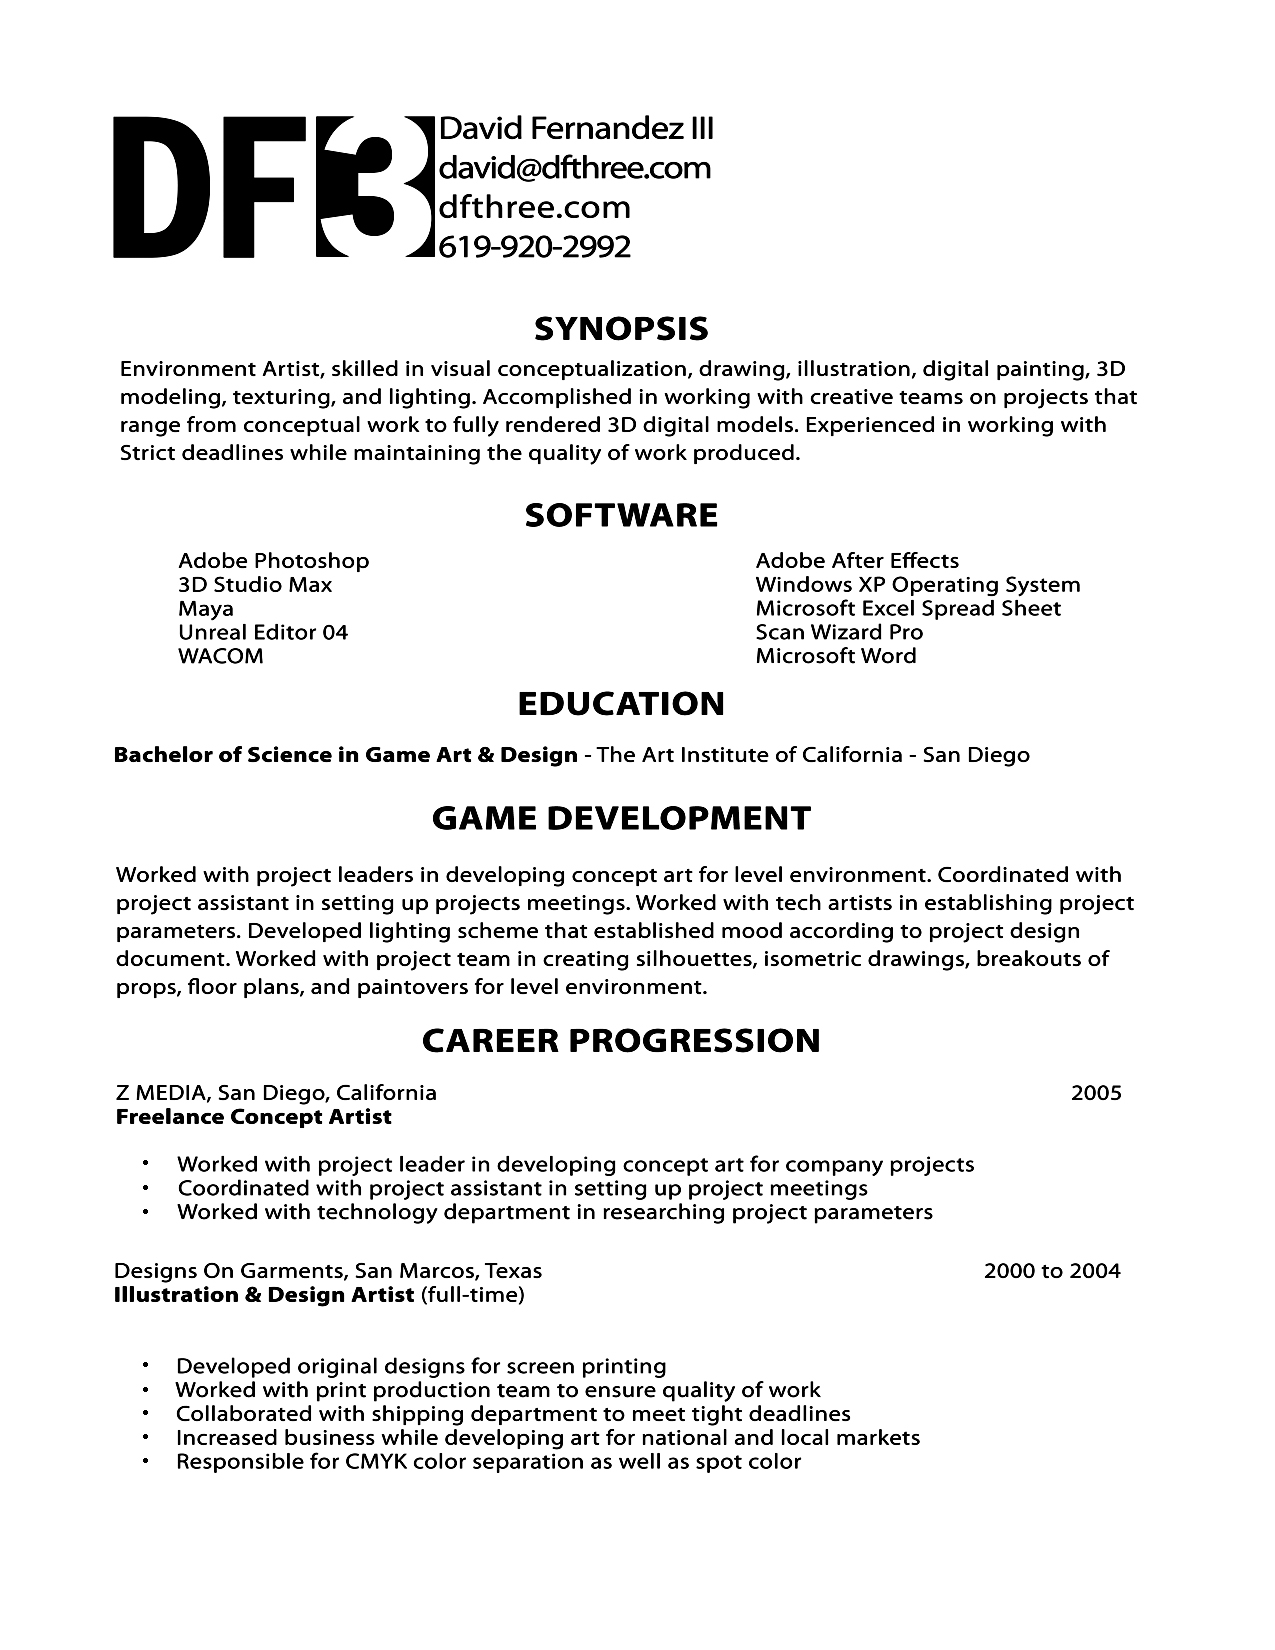 Opposenewapstandardsus  Inspiring Game Developer Resume Game Tester Resume Sample Game Tester  With Lovable Better Jobs Faster With Astounding How To Do A Resume On Microsoft Word  Also Pharmaceutical Resume In Addition Residential Counselor Resume And Free Professional Resume As Well As Retail Buyer Resume Additionally Accounts Payable Manager Resume From Kelseymarieco With Opposenewapstandardsus  Lovable Game Developer Resume Game Tester Resume Sample Game Tester  With Astounding Better Jobs Faster And Inspiring How To Do A Resume On Microsoft Word  Also Pharmaceutical Resume In Addition Residential Counselor Resume From Kelseymarieco